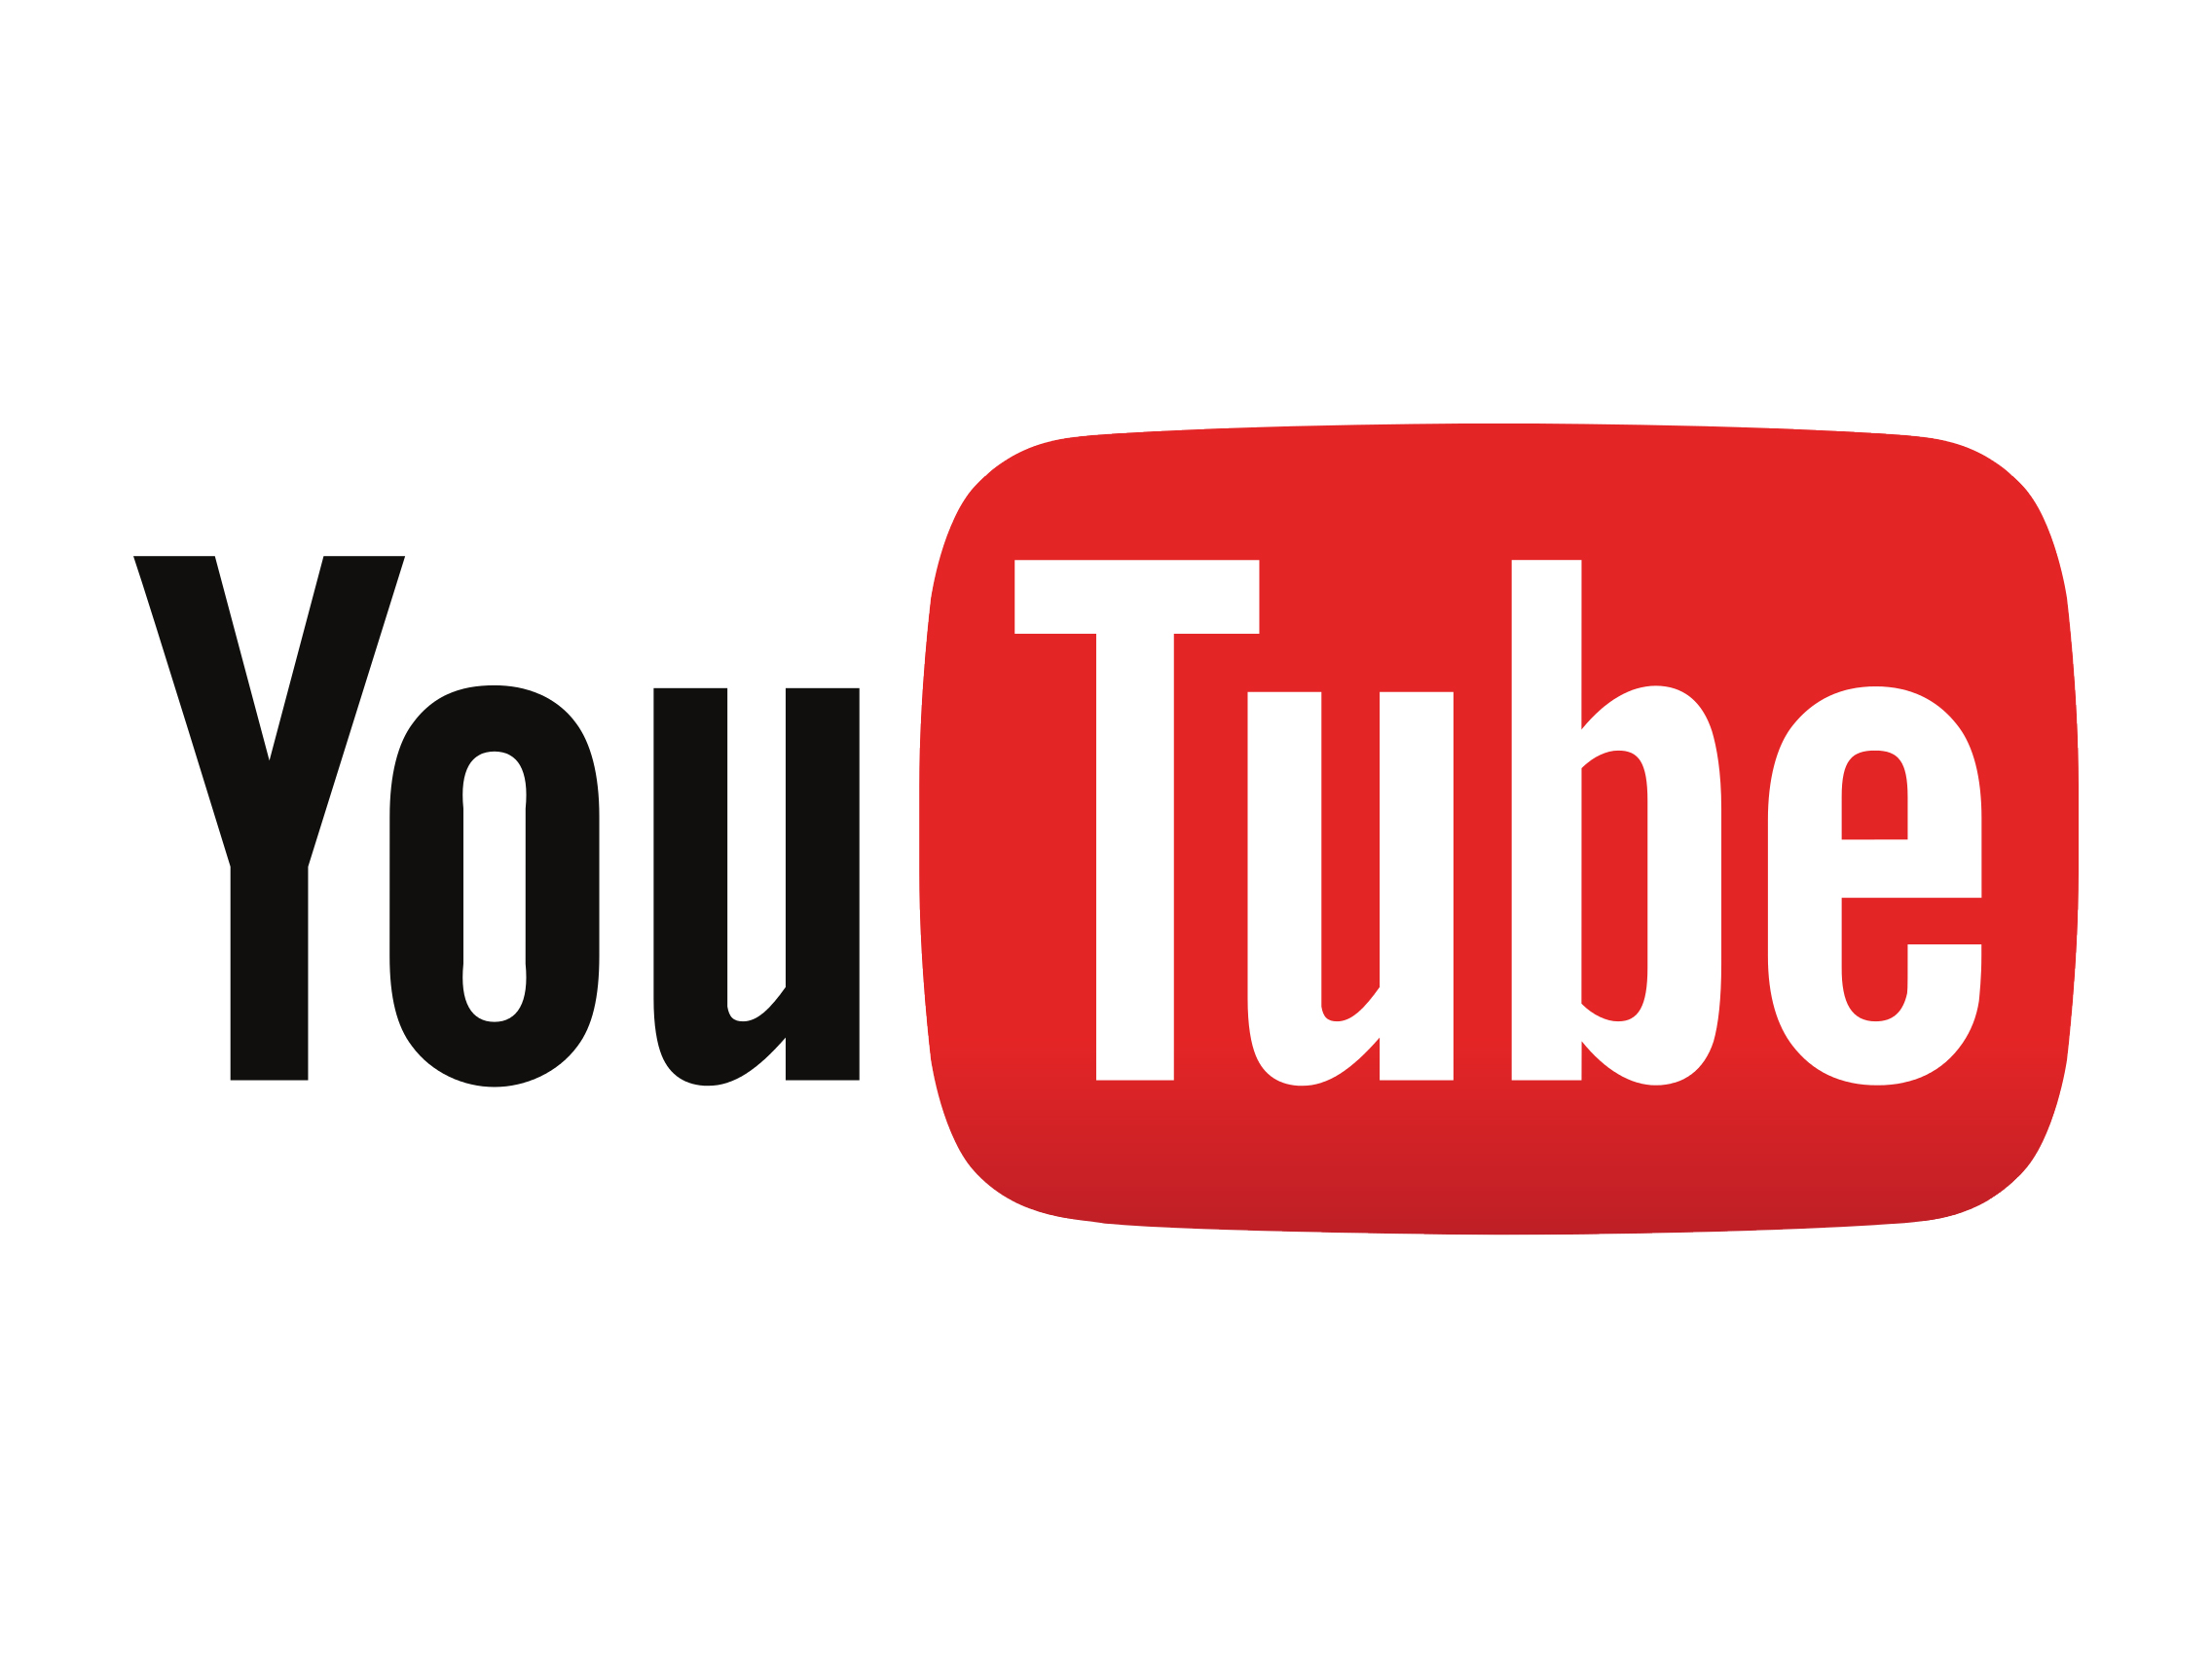 The official YouTube updated to fully support the larger iPad Pro